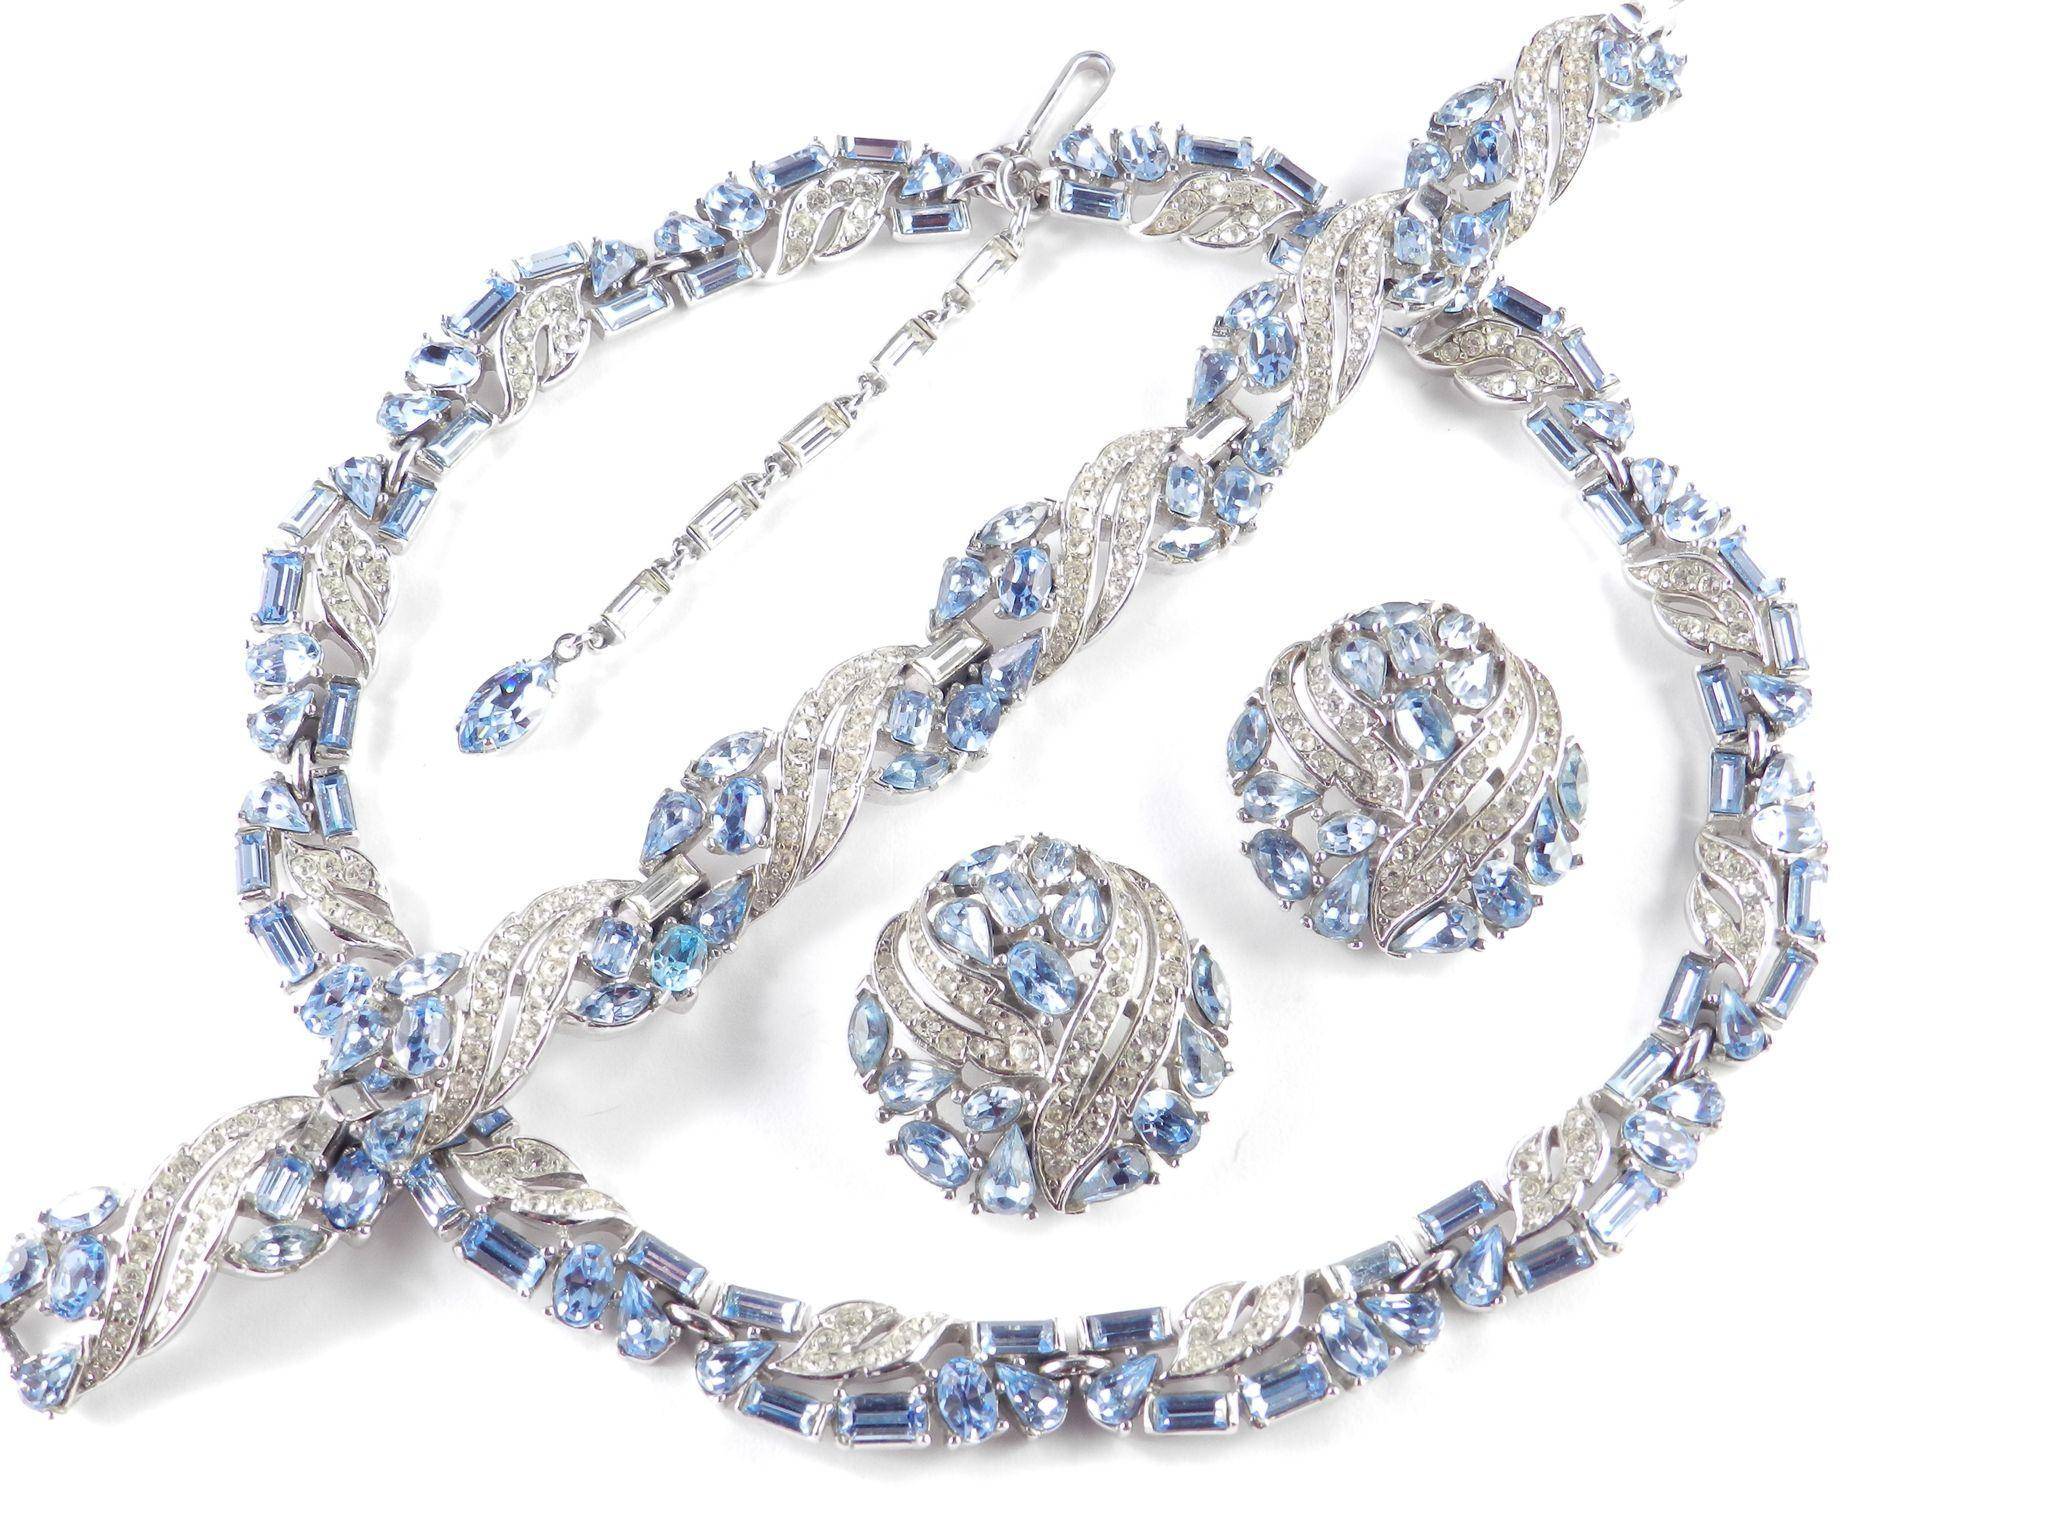 Trifari Rhinestone Necklace Bracelet Earrings Parure Set  Rhodium Plate